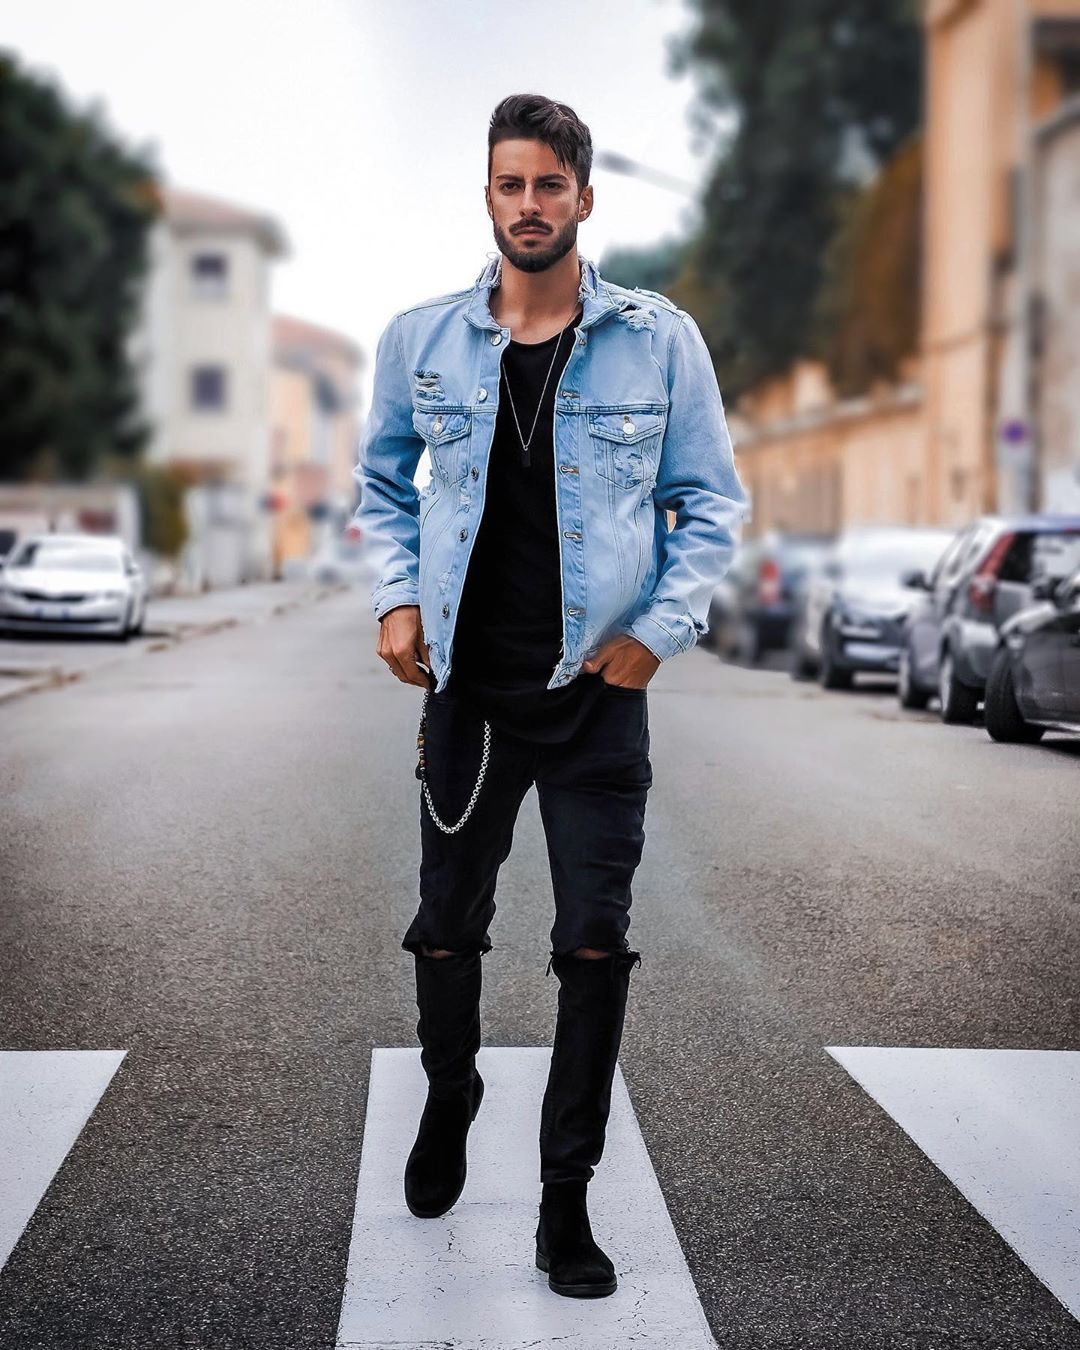 Alex Garman On Instagram Good Evening Guys My Look Tonight Stylish Mens Outfits Jean Jacket Outfits Men Mens Outfits [ 1350 x 1080 Pixel ]